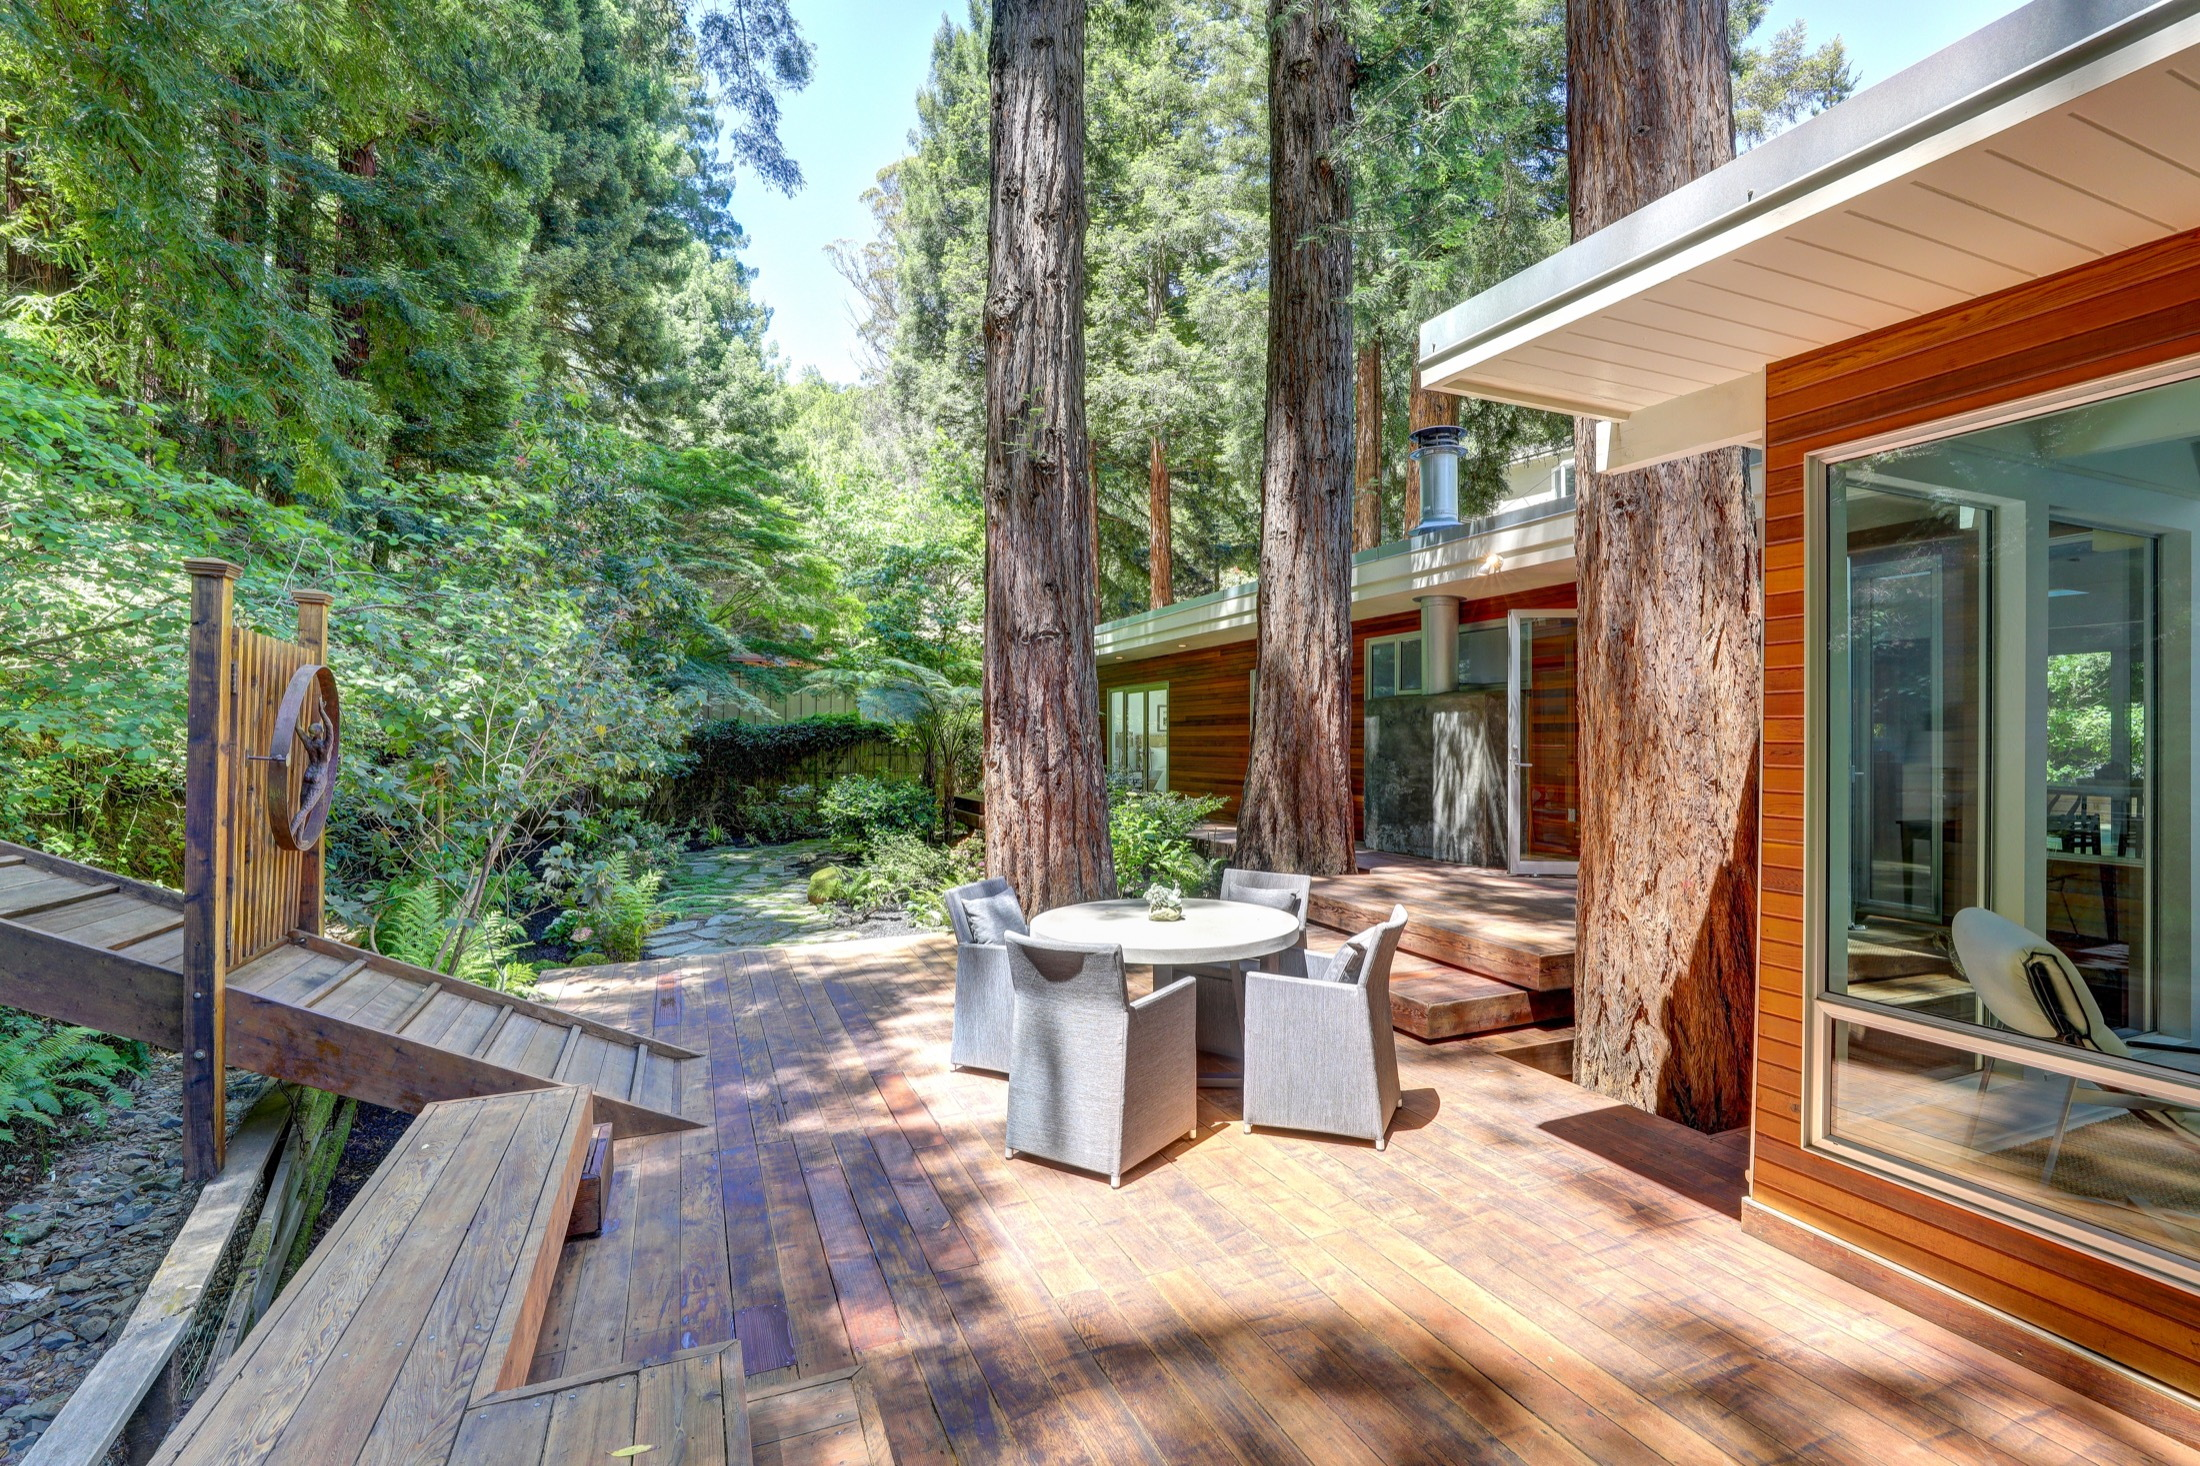 7 Barrie Way Mill Valley Real Estate 37 MLS- Own Marin Pacific Union - Marin County Realtors.jpg